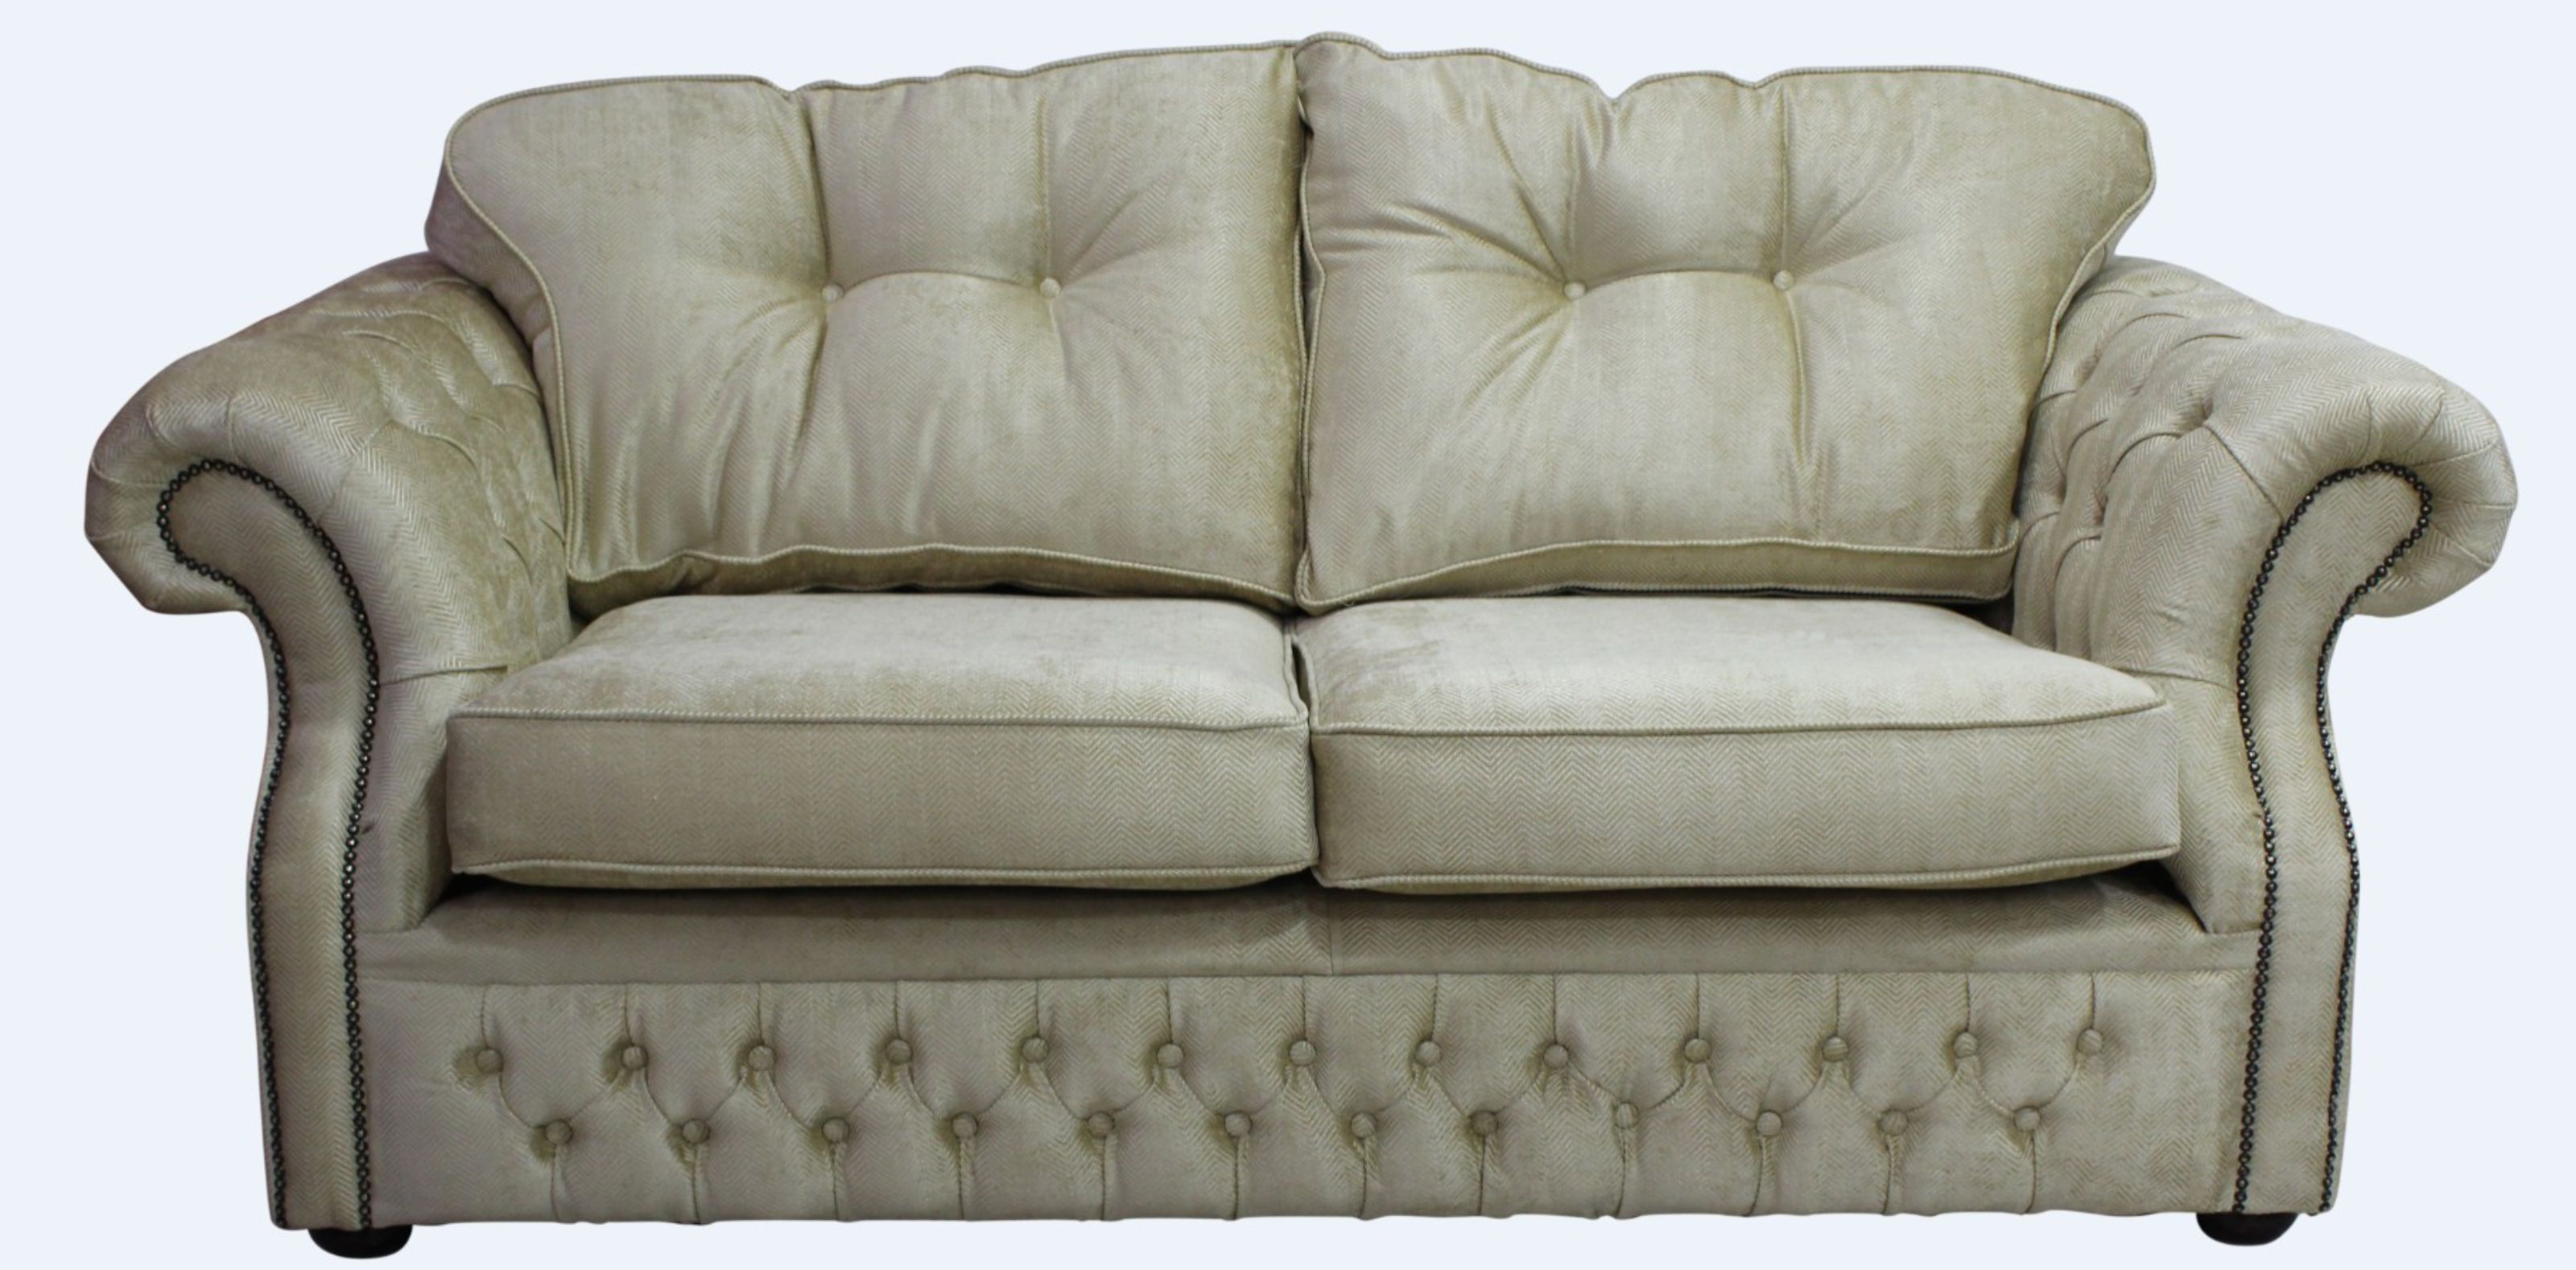 Chesterfield Era 2 Seater Settee Traditional Chesterfield Sofa